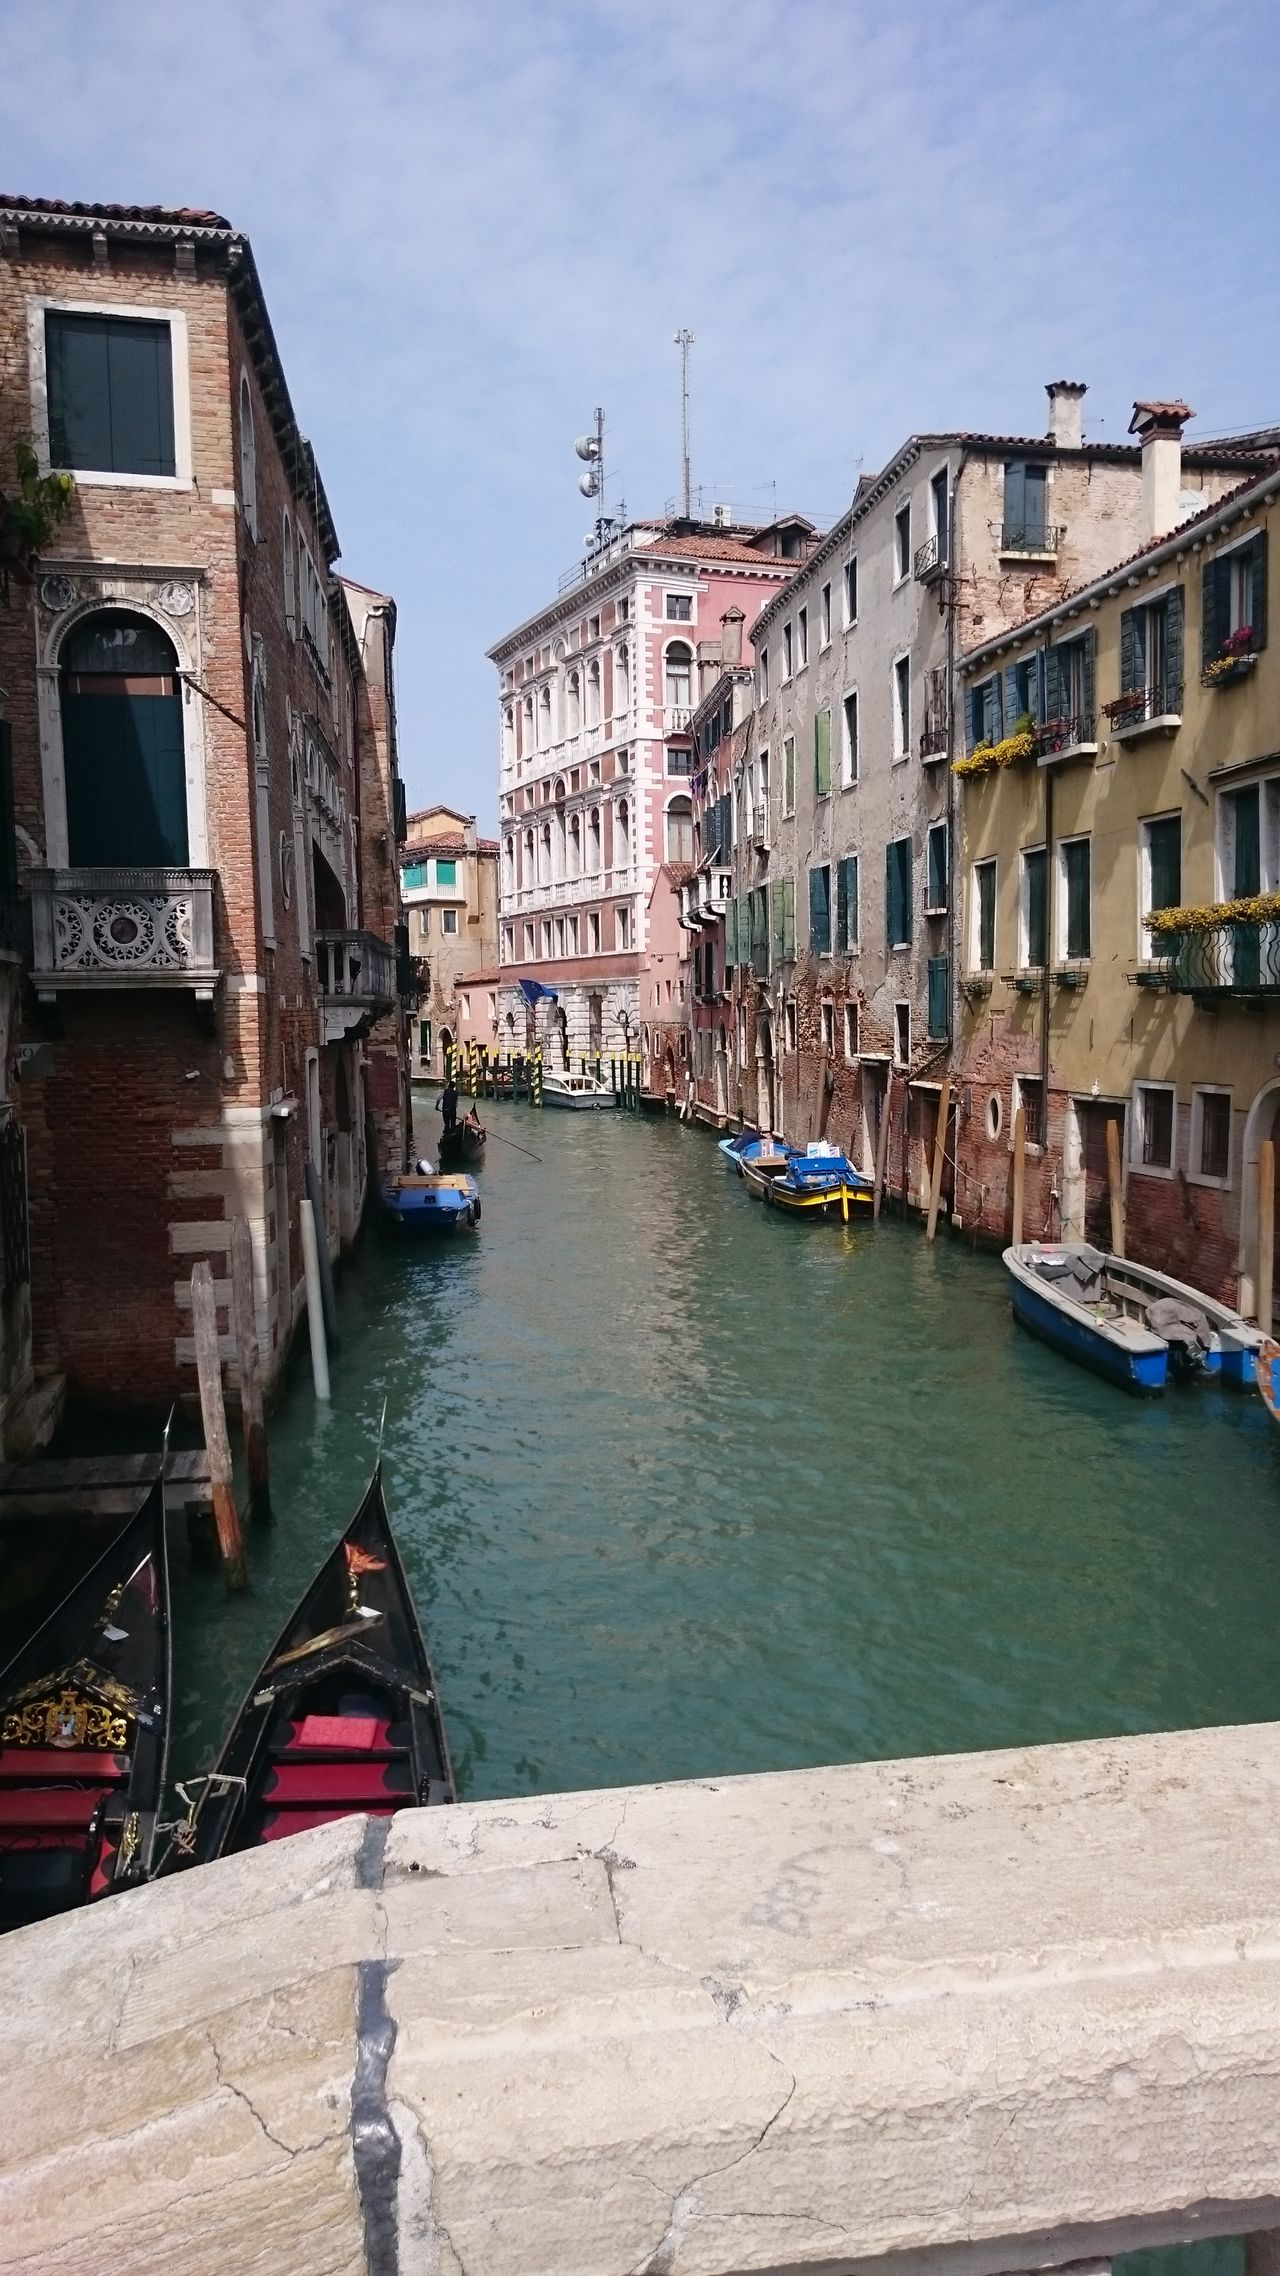 Venezia City Travel Destinations Building Exterior Architecture Water Outdoors City Break Sky Old-fashioned Cityscape Clock Face No People Medieval Day Gondola - Traditional Boat